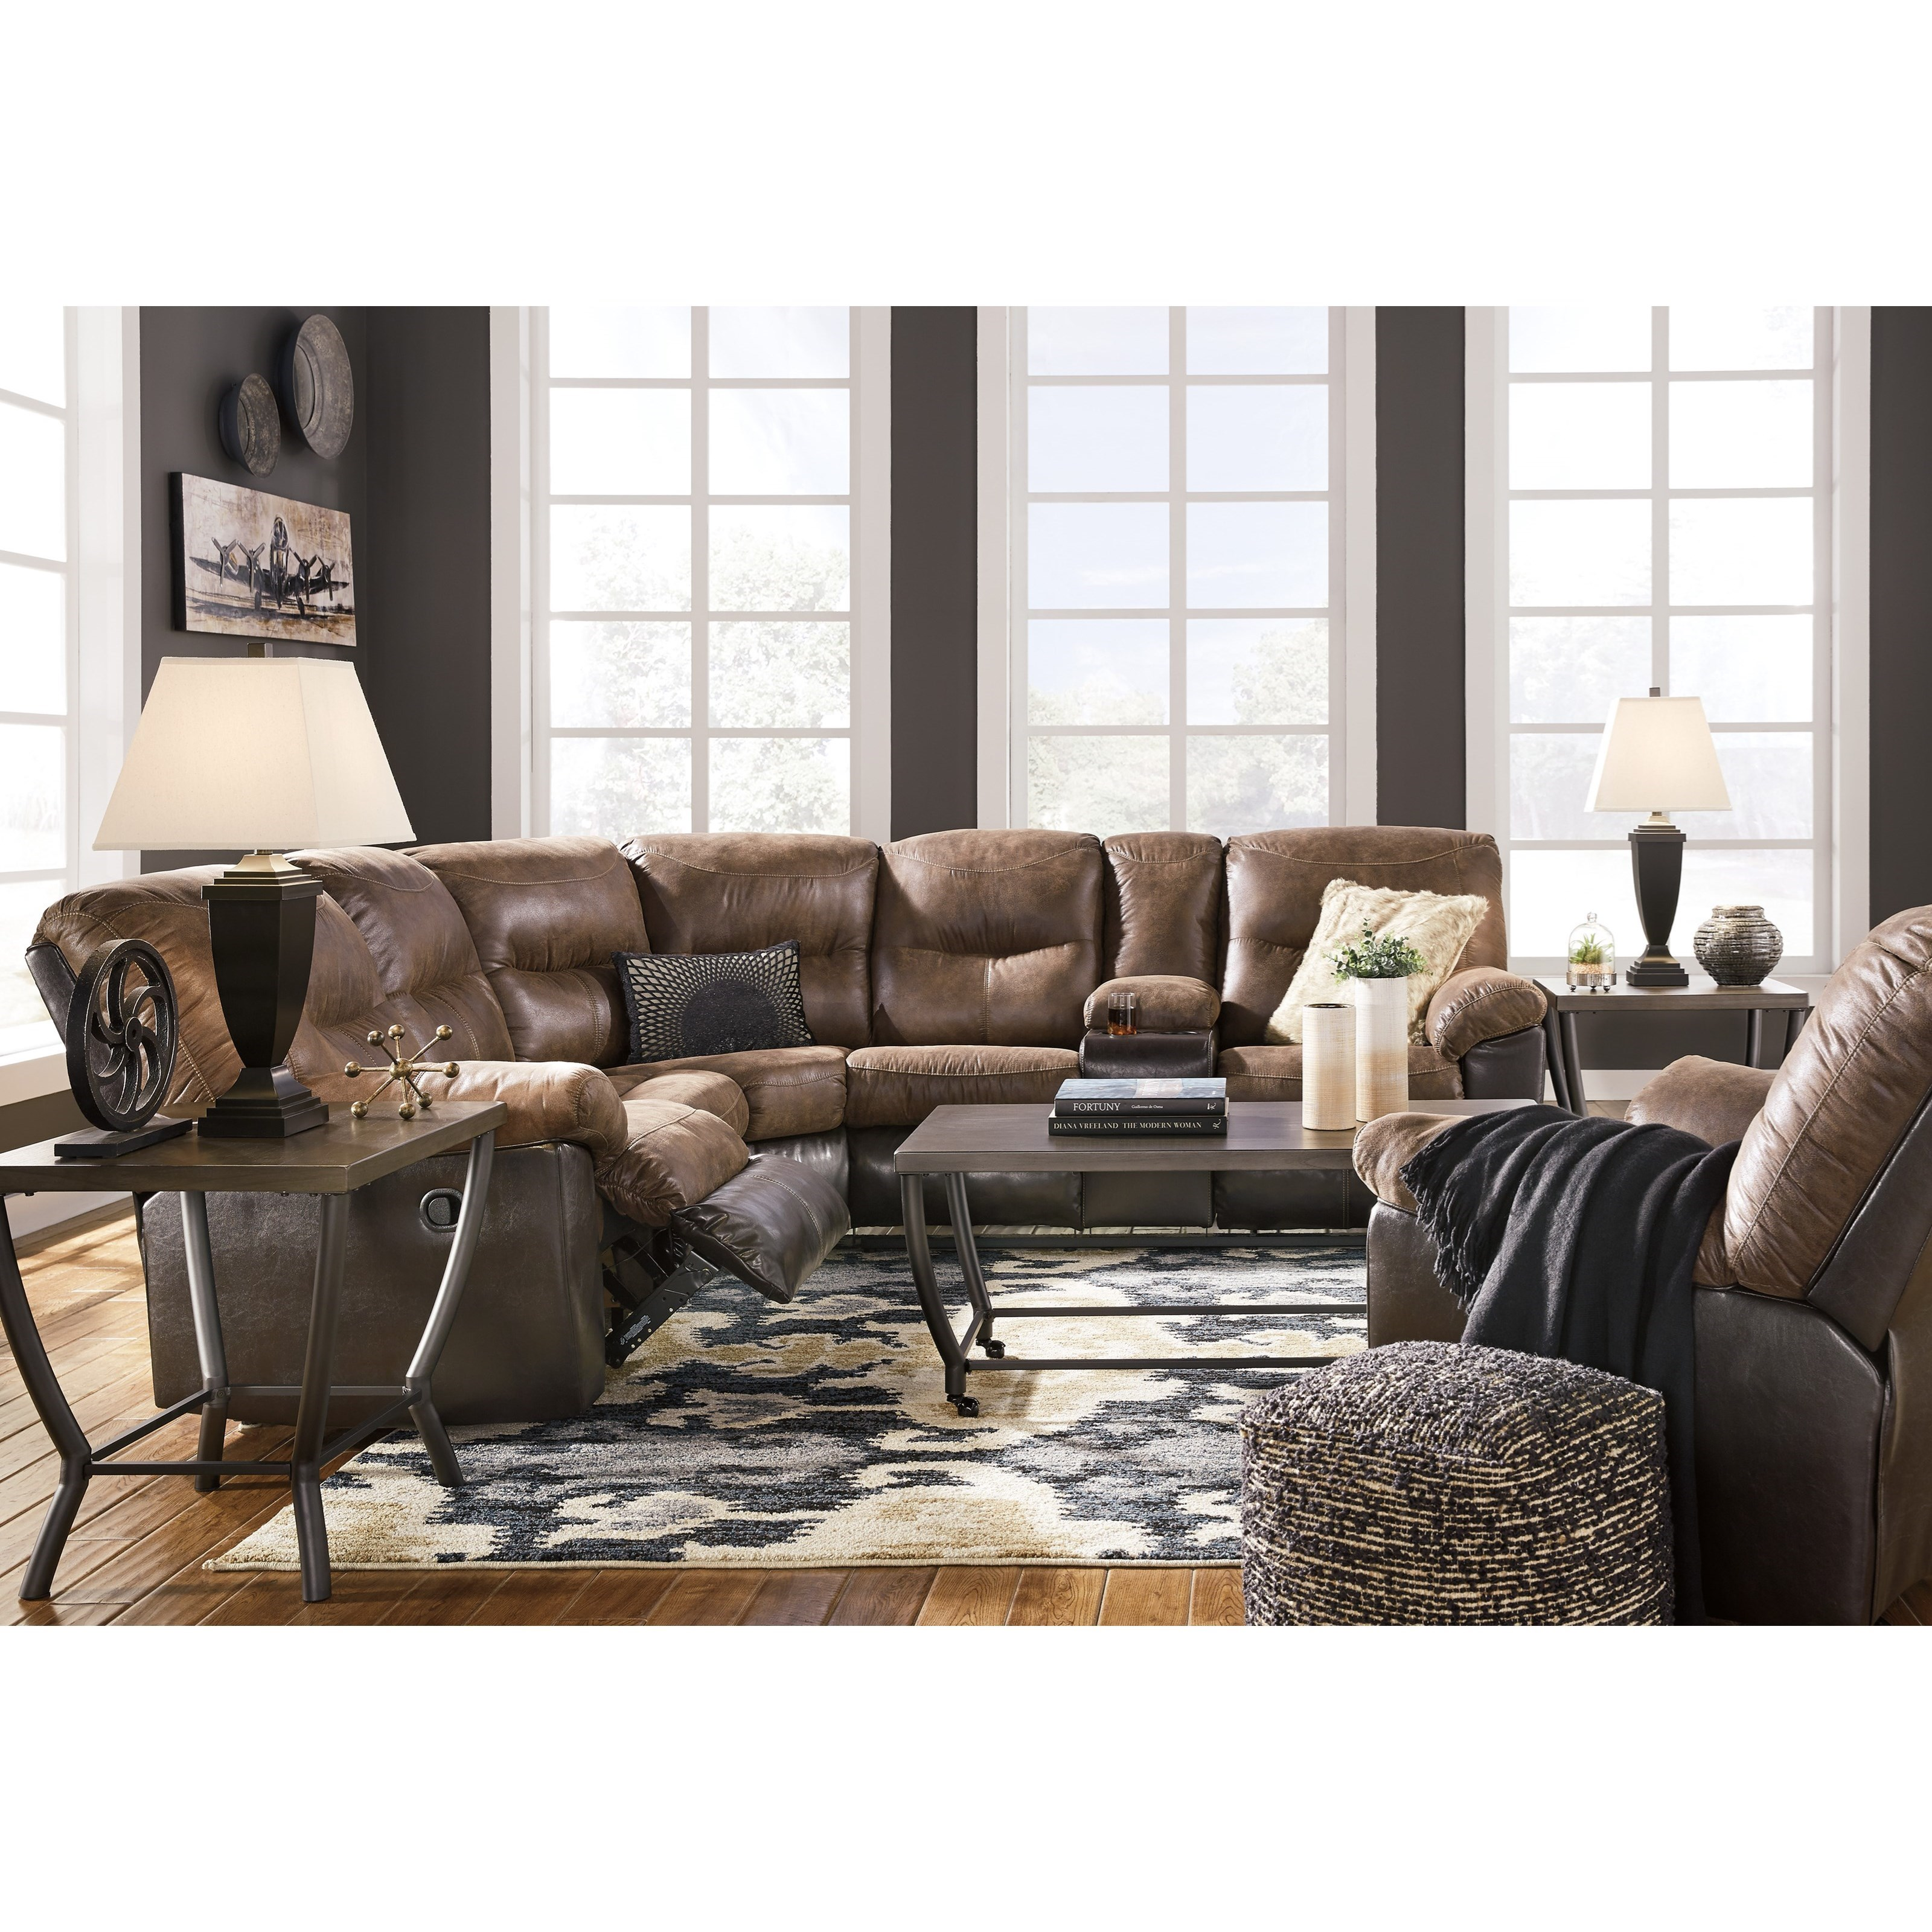 Signature design by ashley leonberg living room group for Living room furniture groups